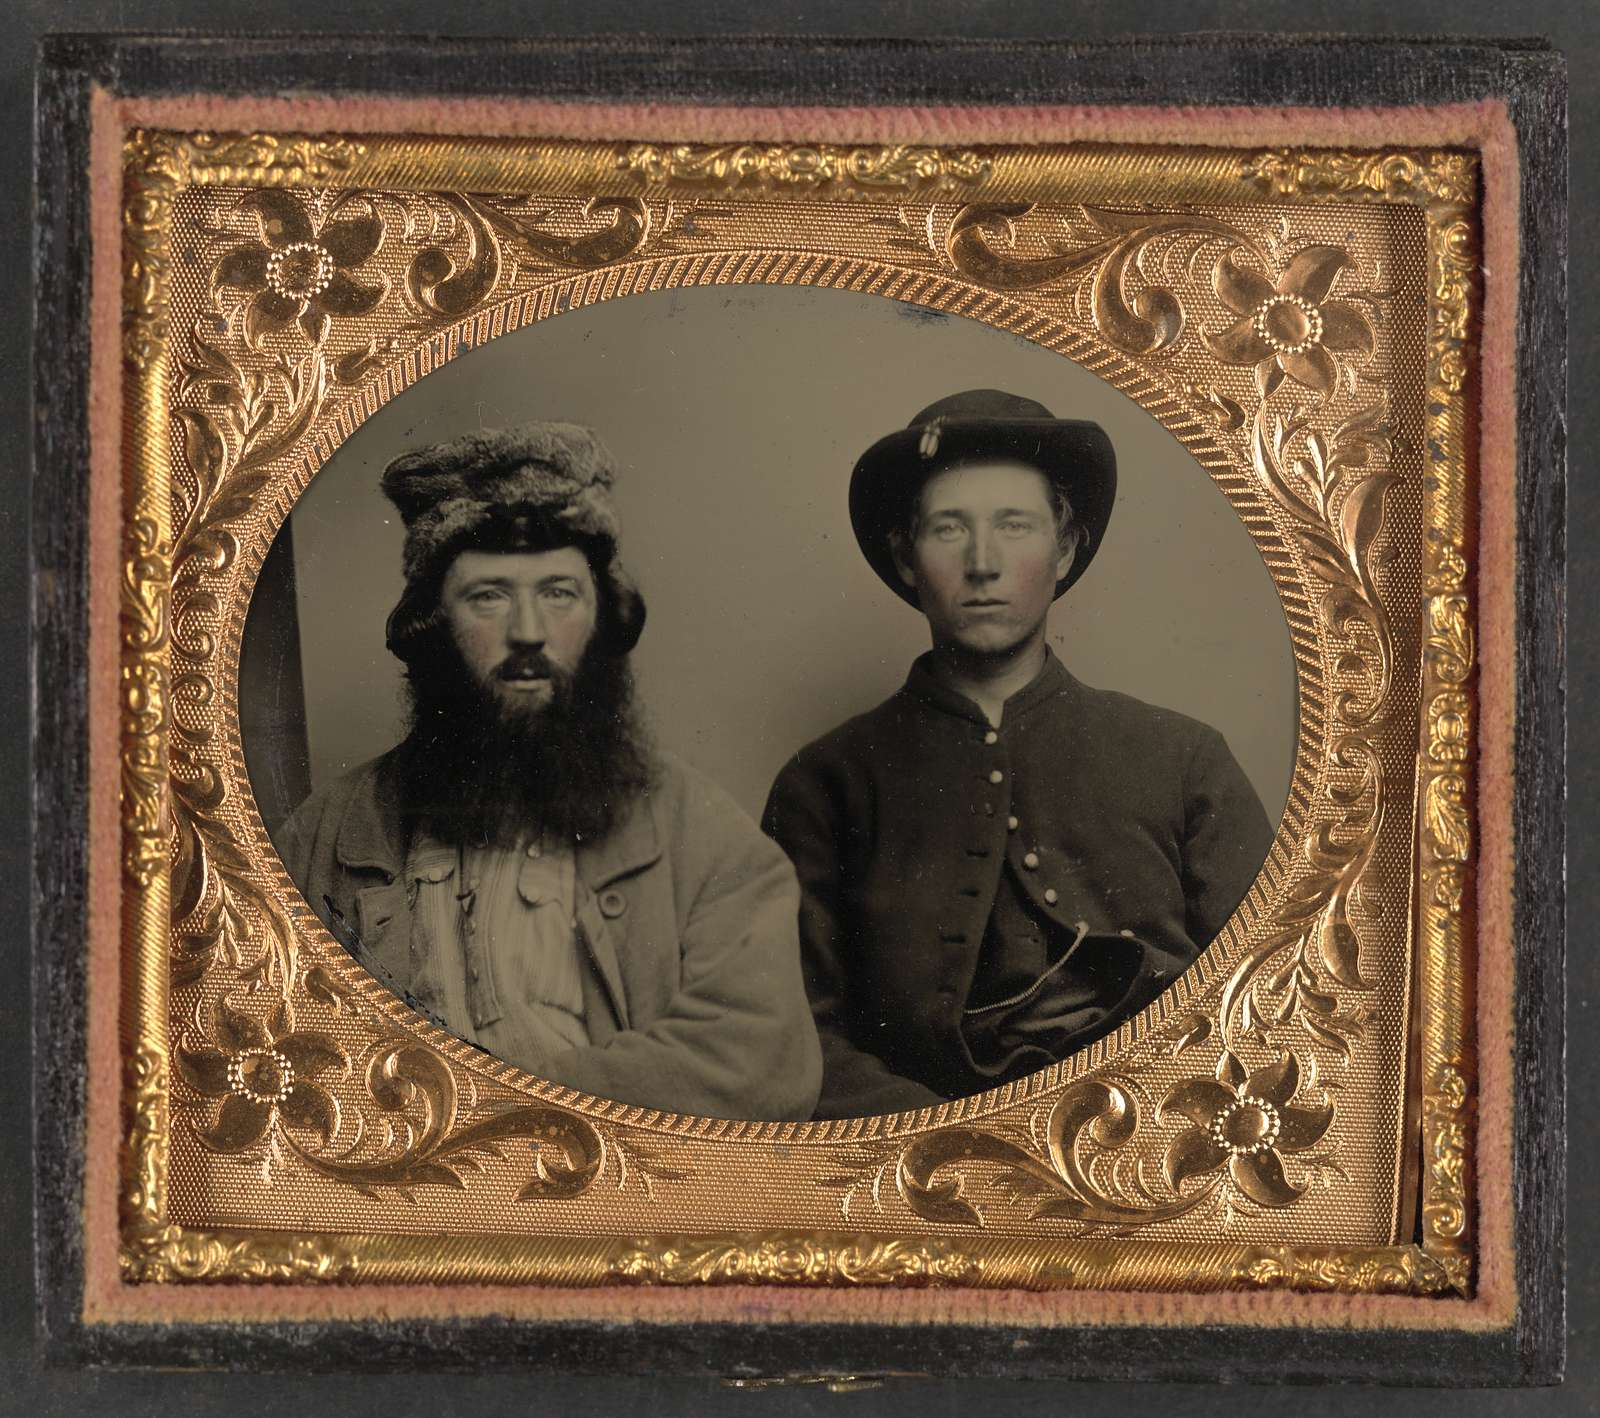 [Unidentified soldier in Union uniform and unidentified man with full beard in fur hat]